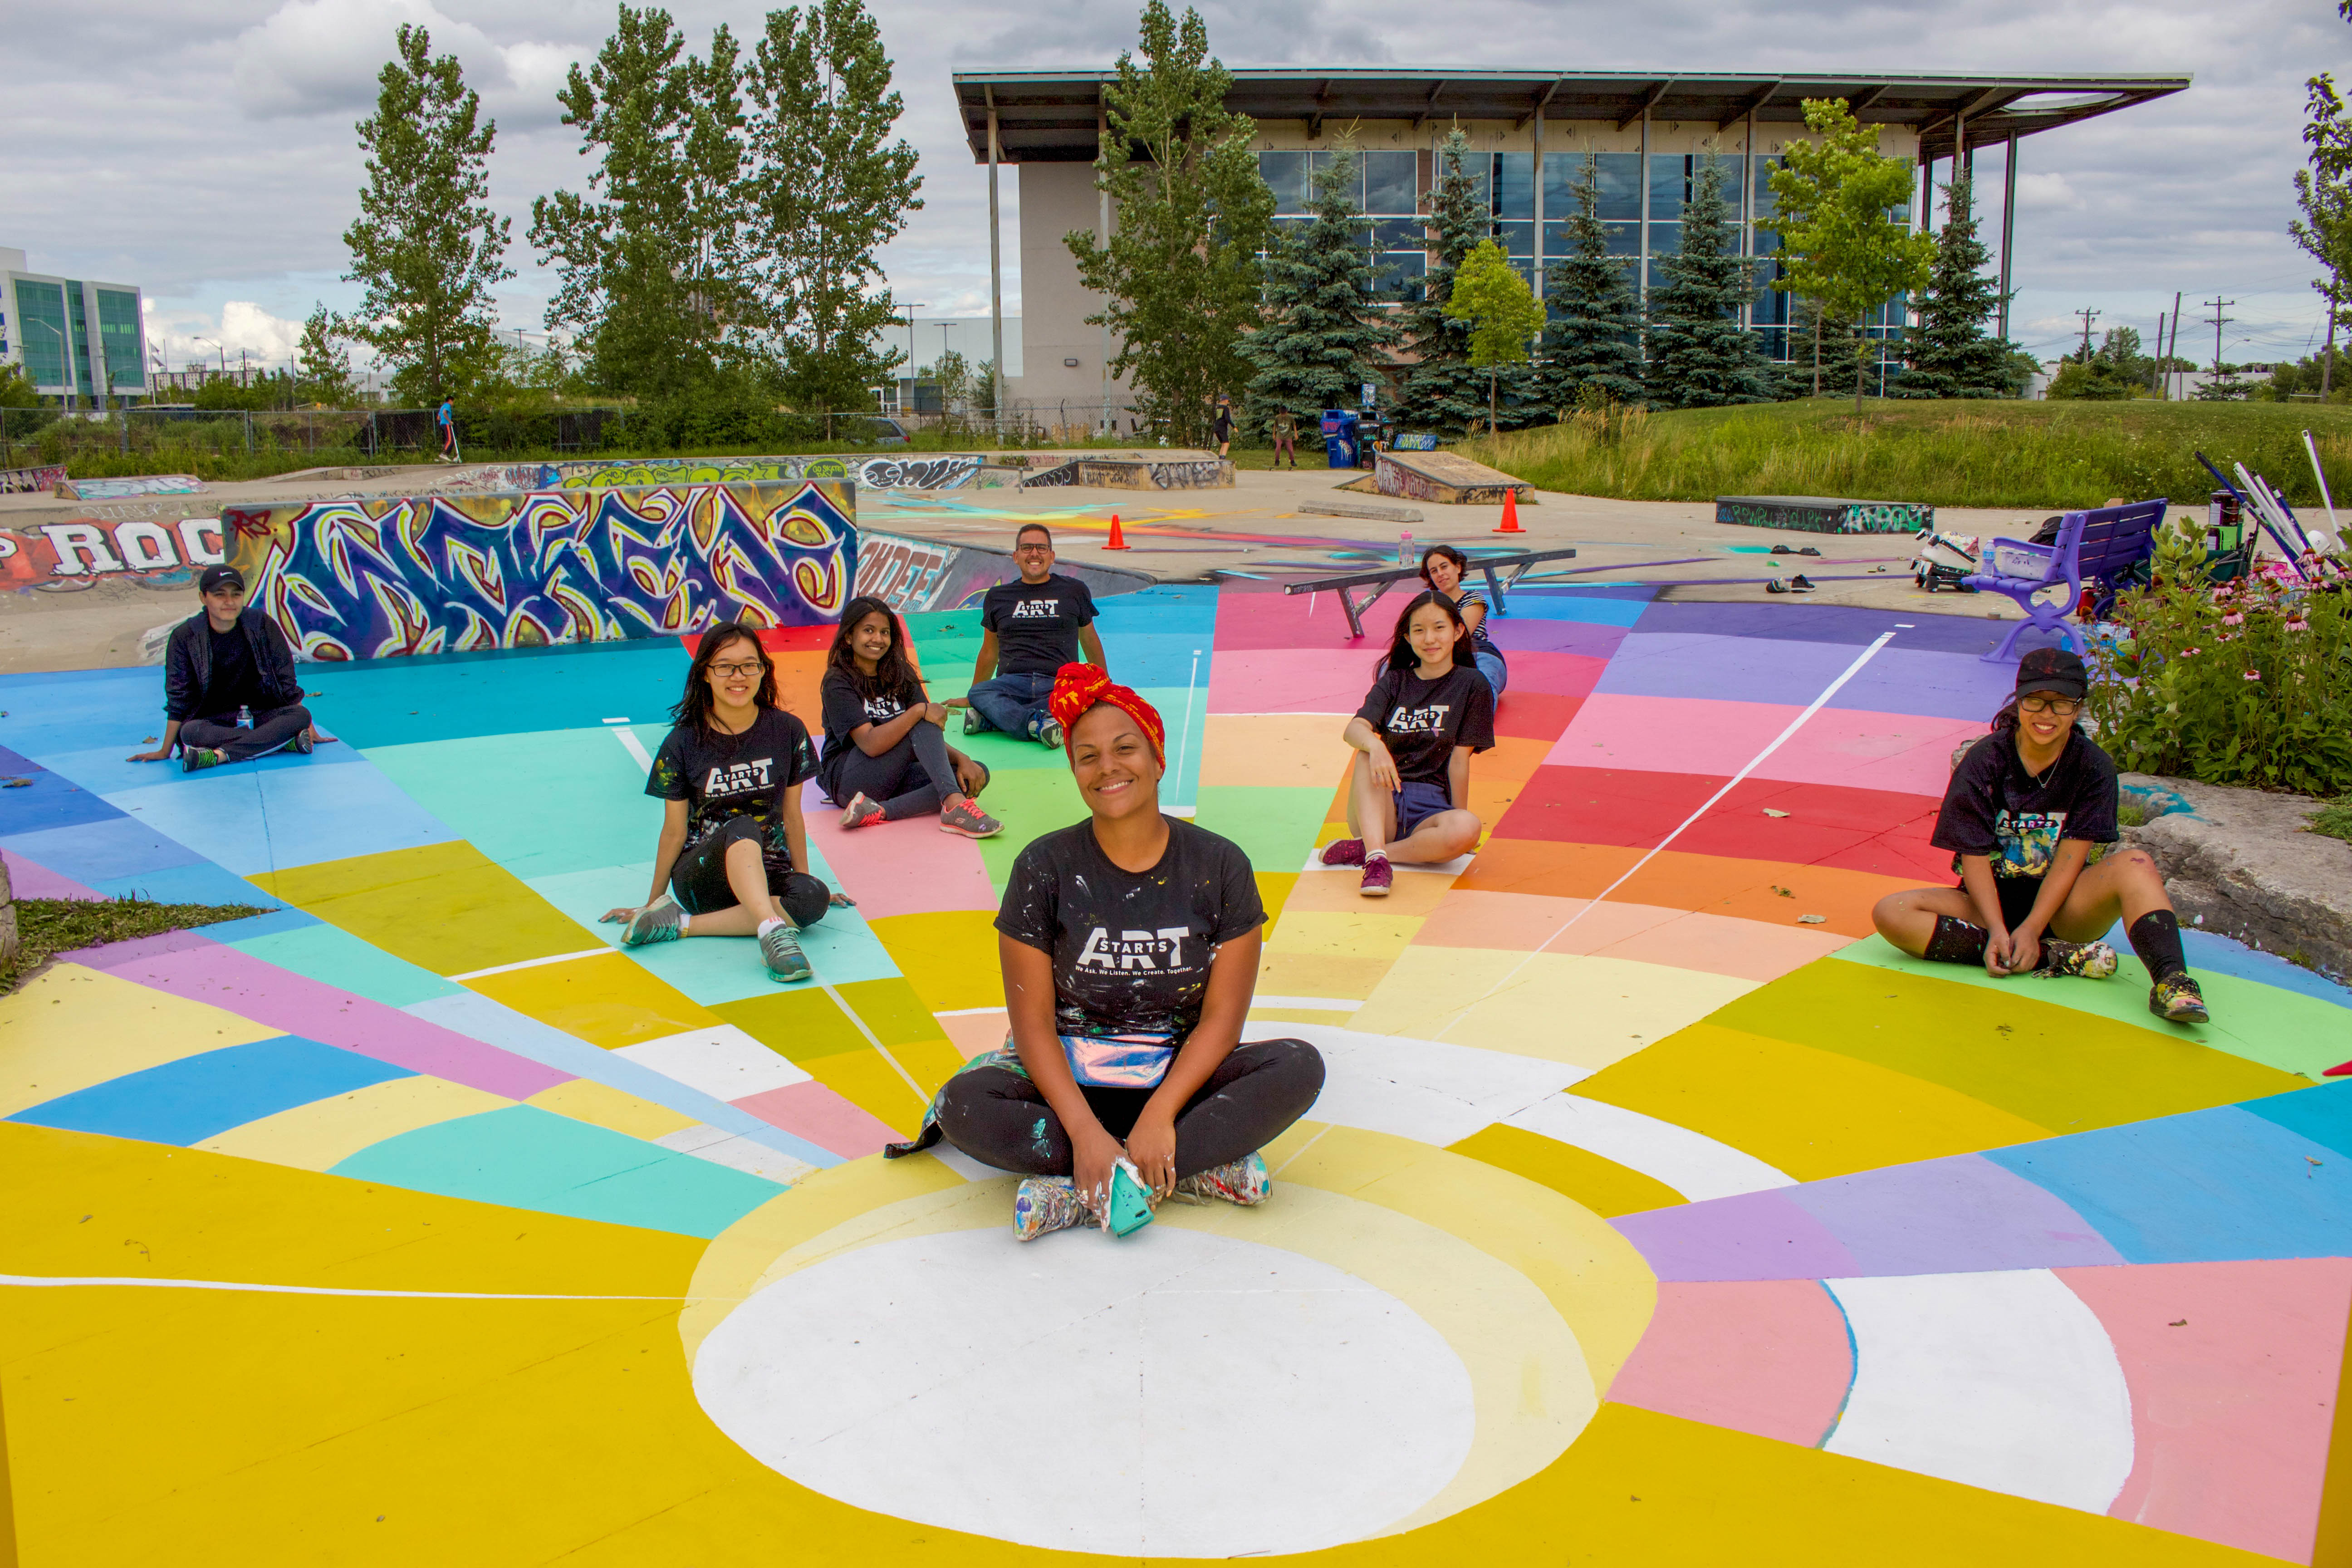 Art Starts - The Placemaking Project